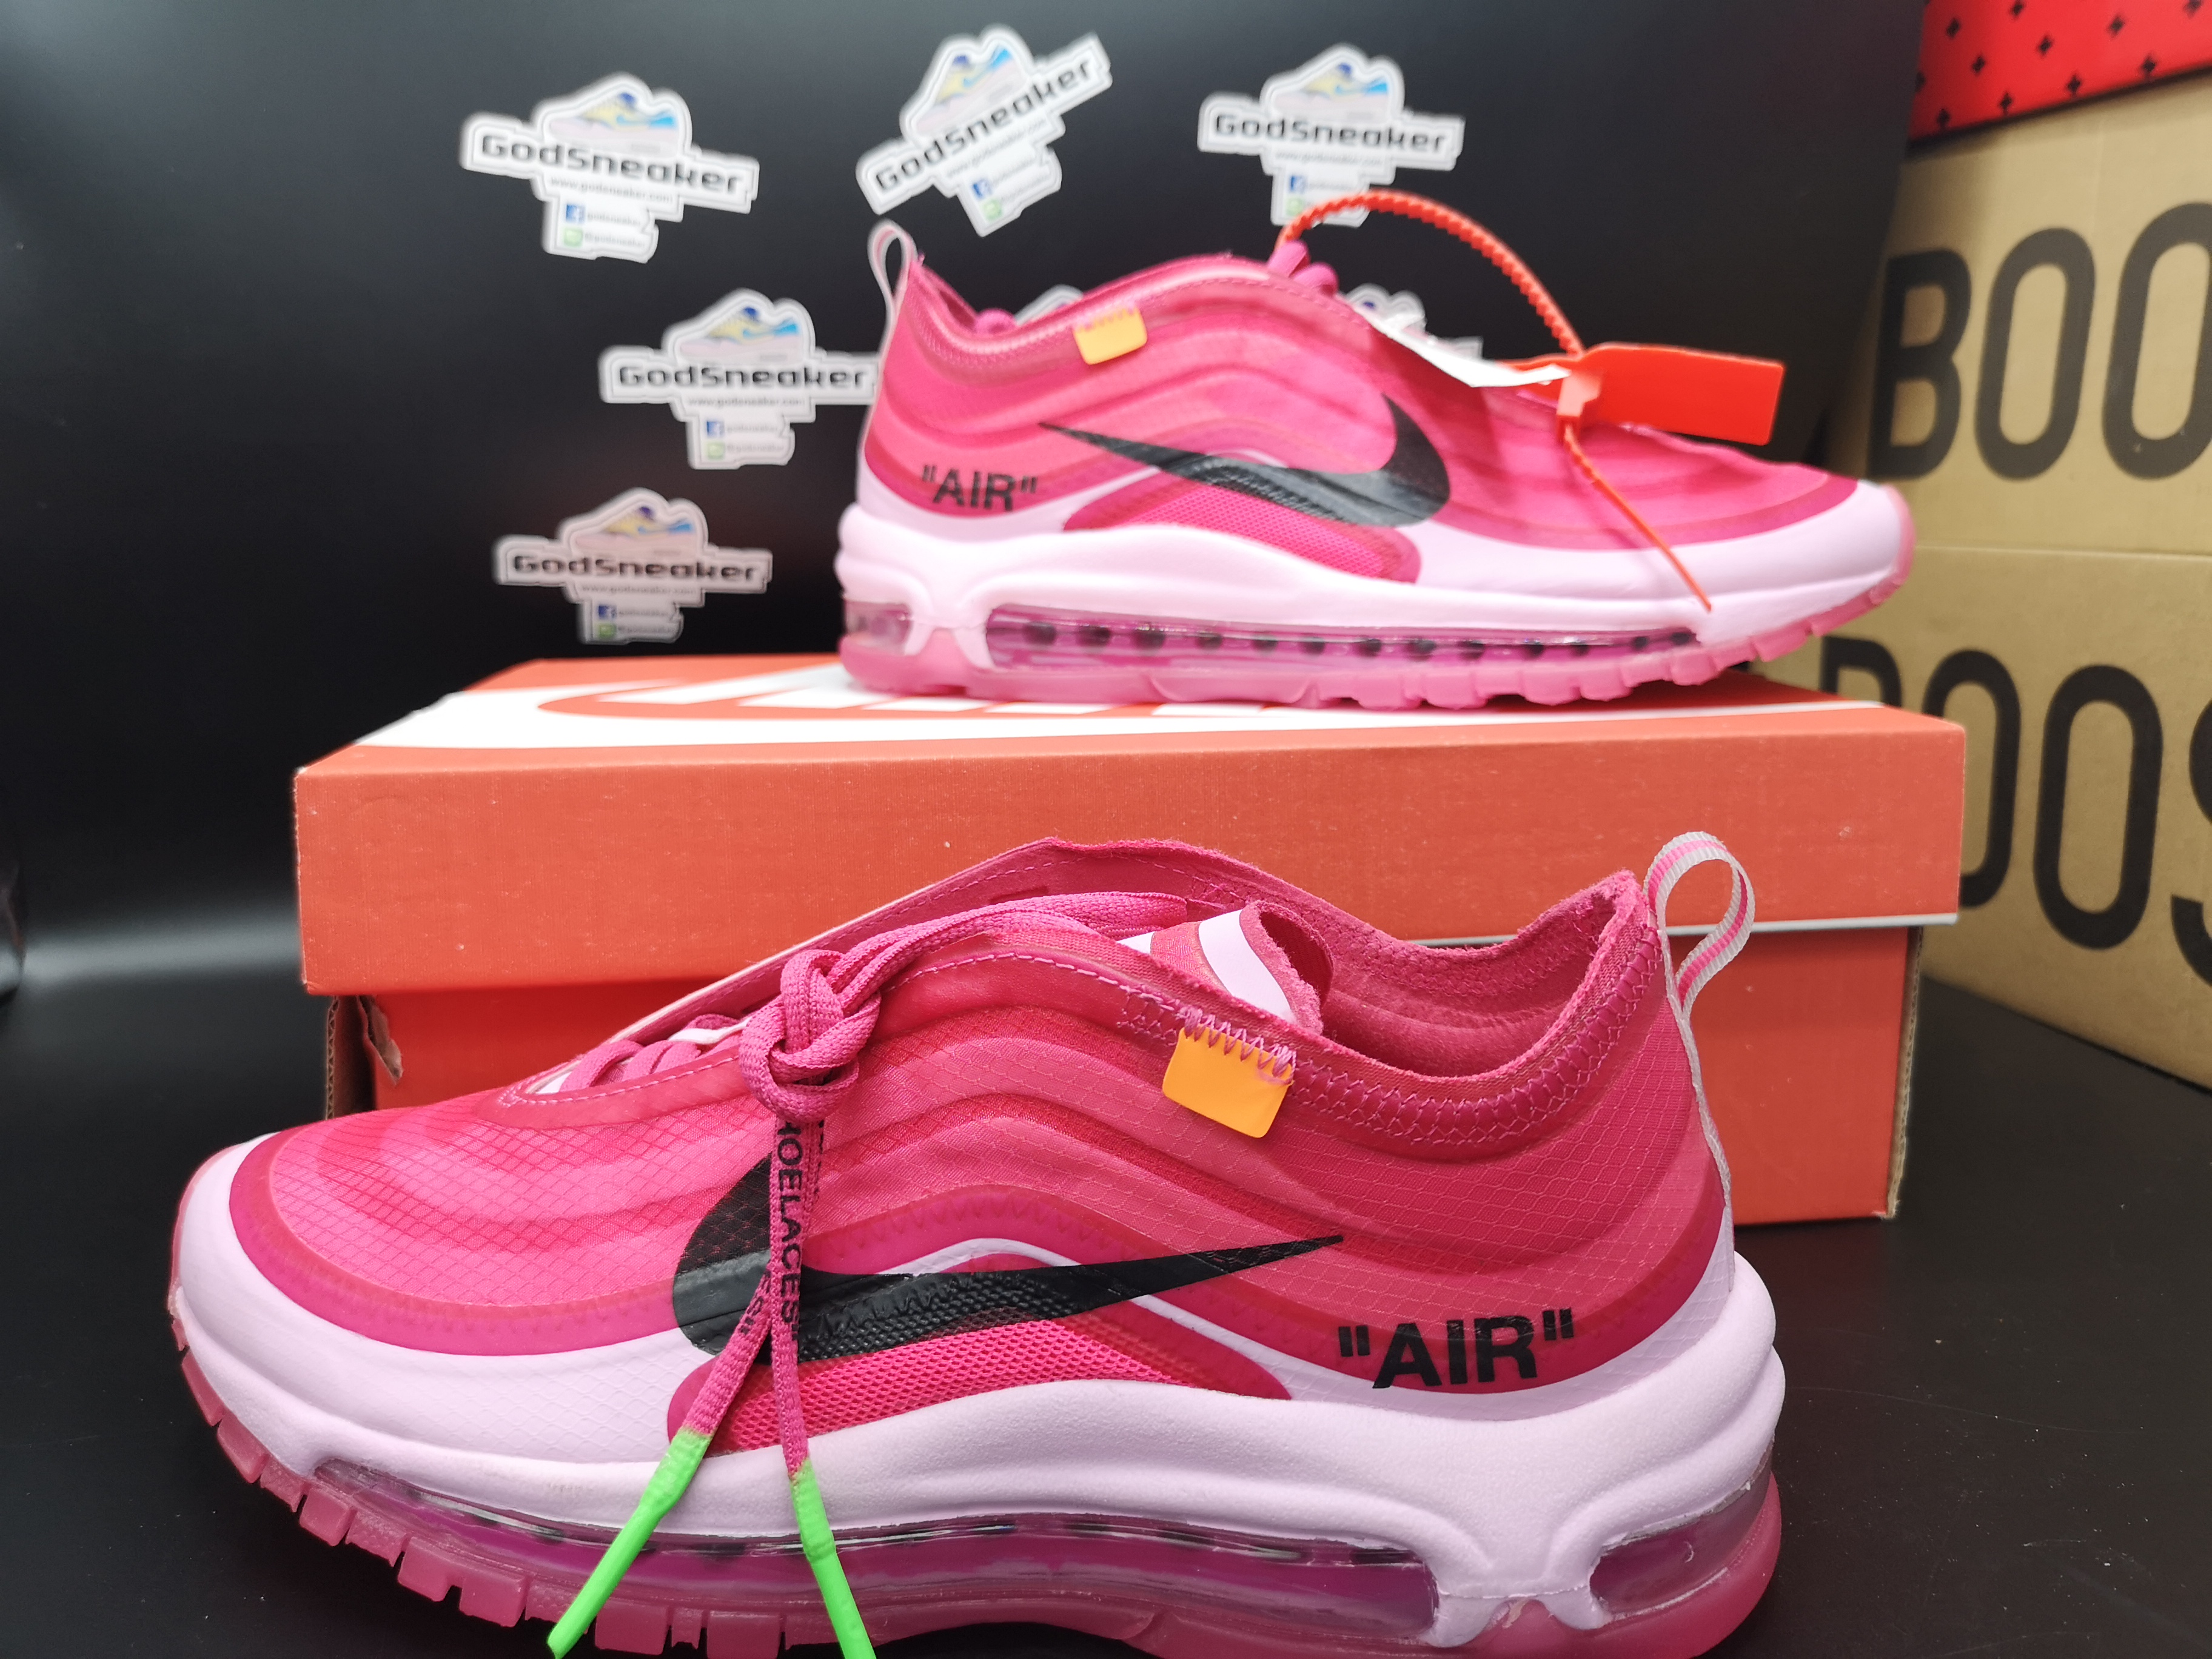 65f314c0ee Nike Air Max 97 Off White OG Shoes Coral Pink Black White Size 36-40 ...